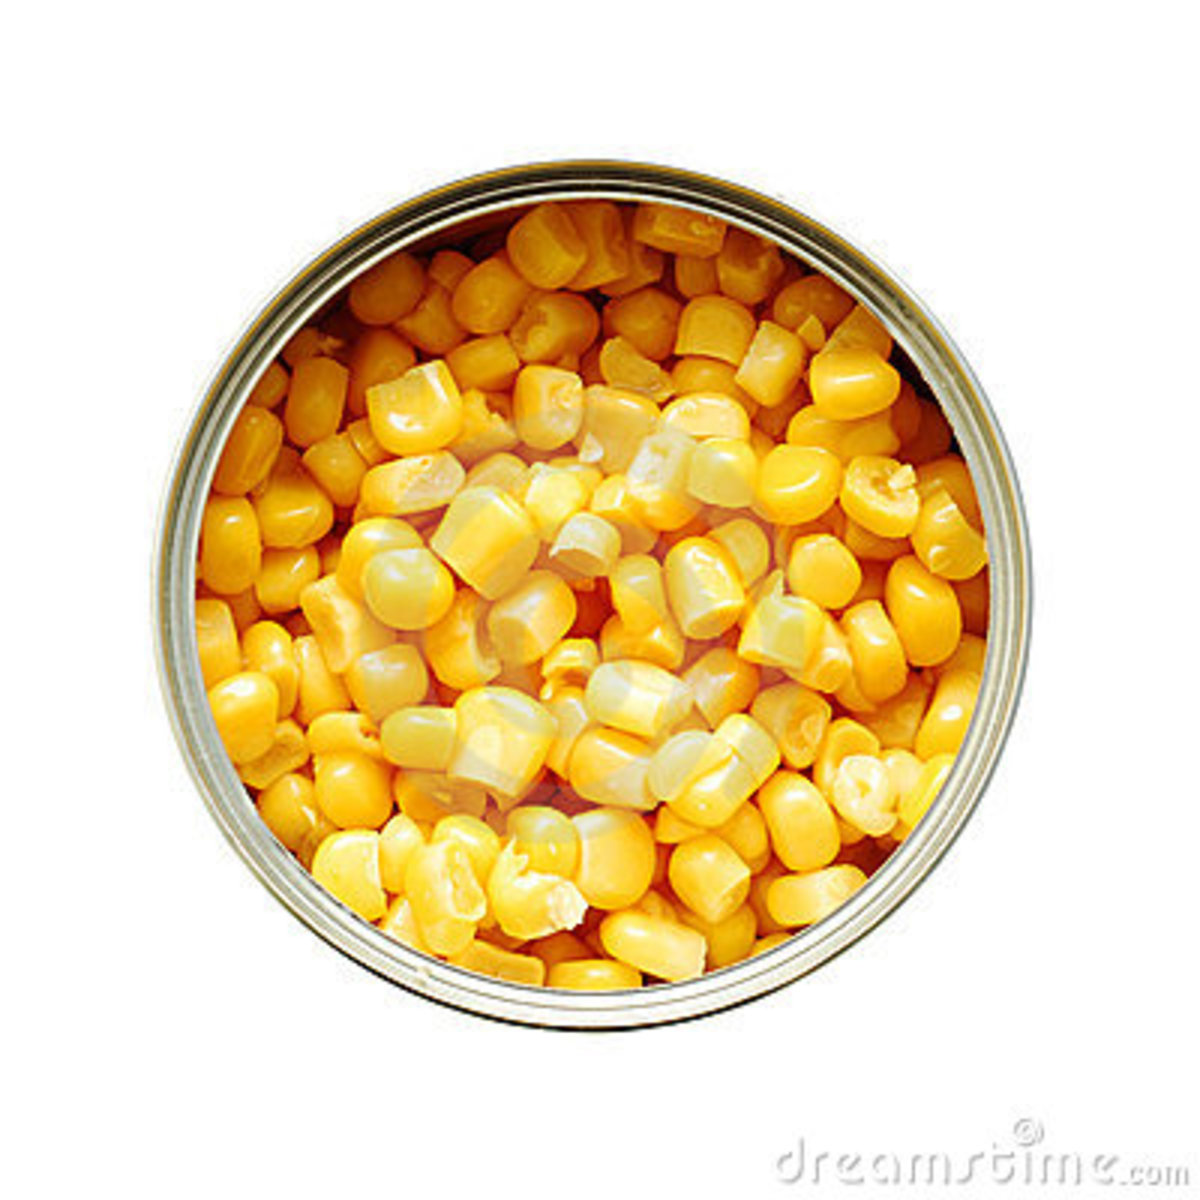 Whole sweet corn kernels are ideal but you can also try using the cream style or whatever kind of corn you prefer. It's always fun to experiment. :)